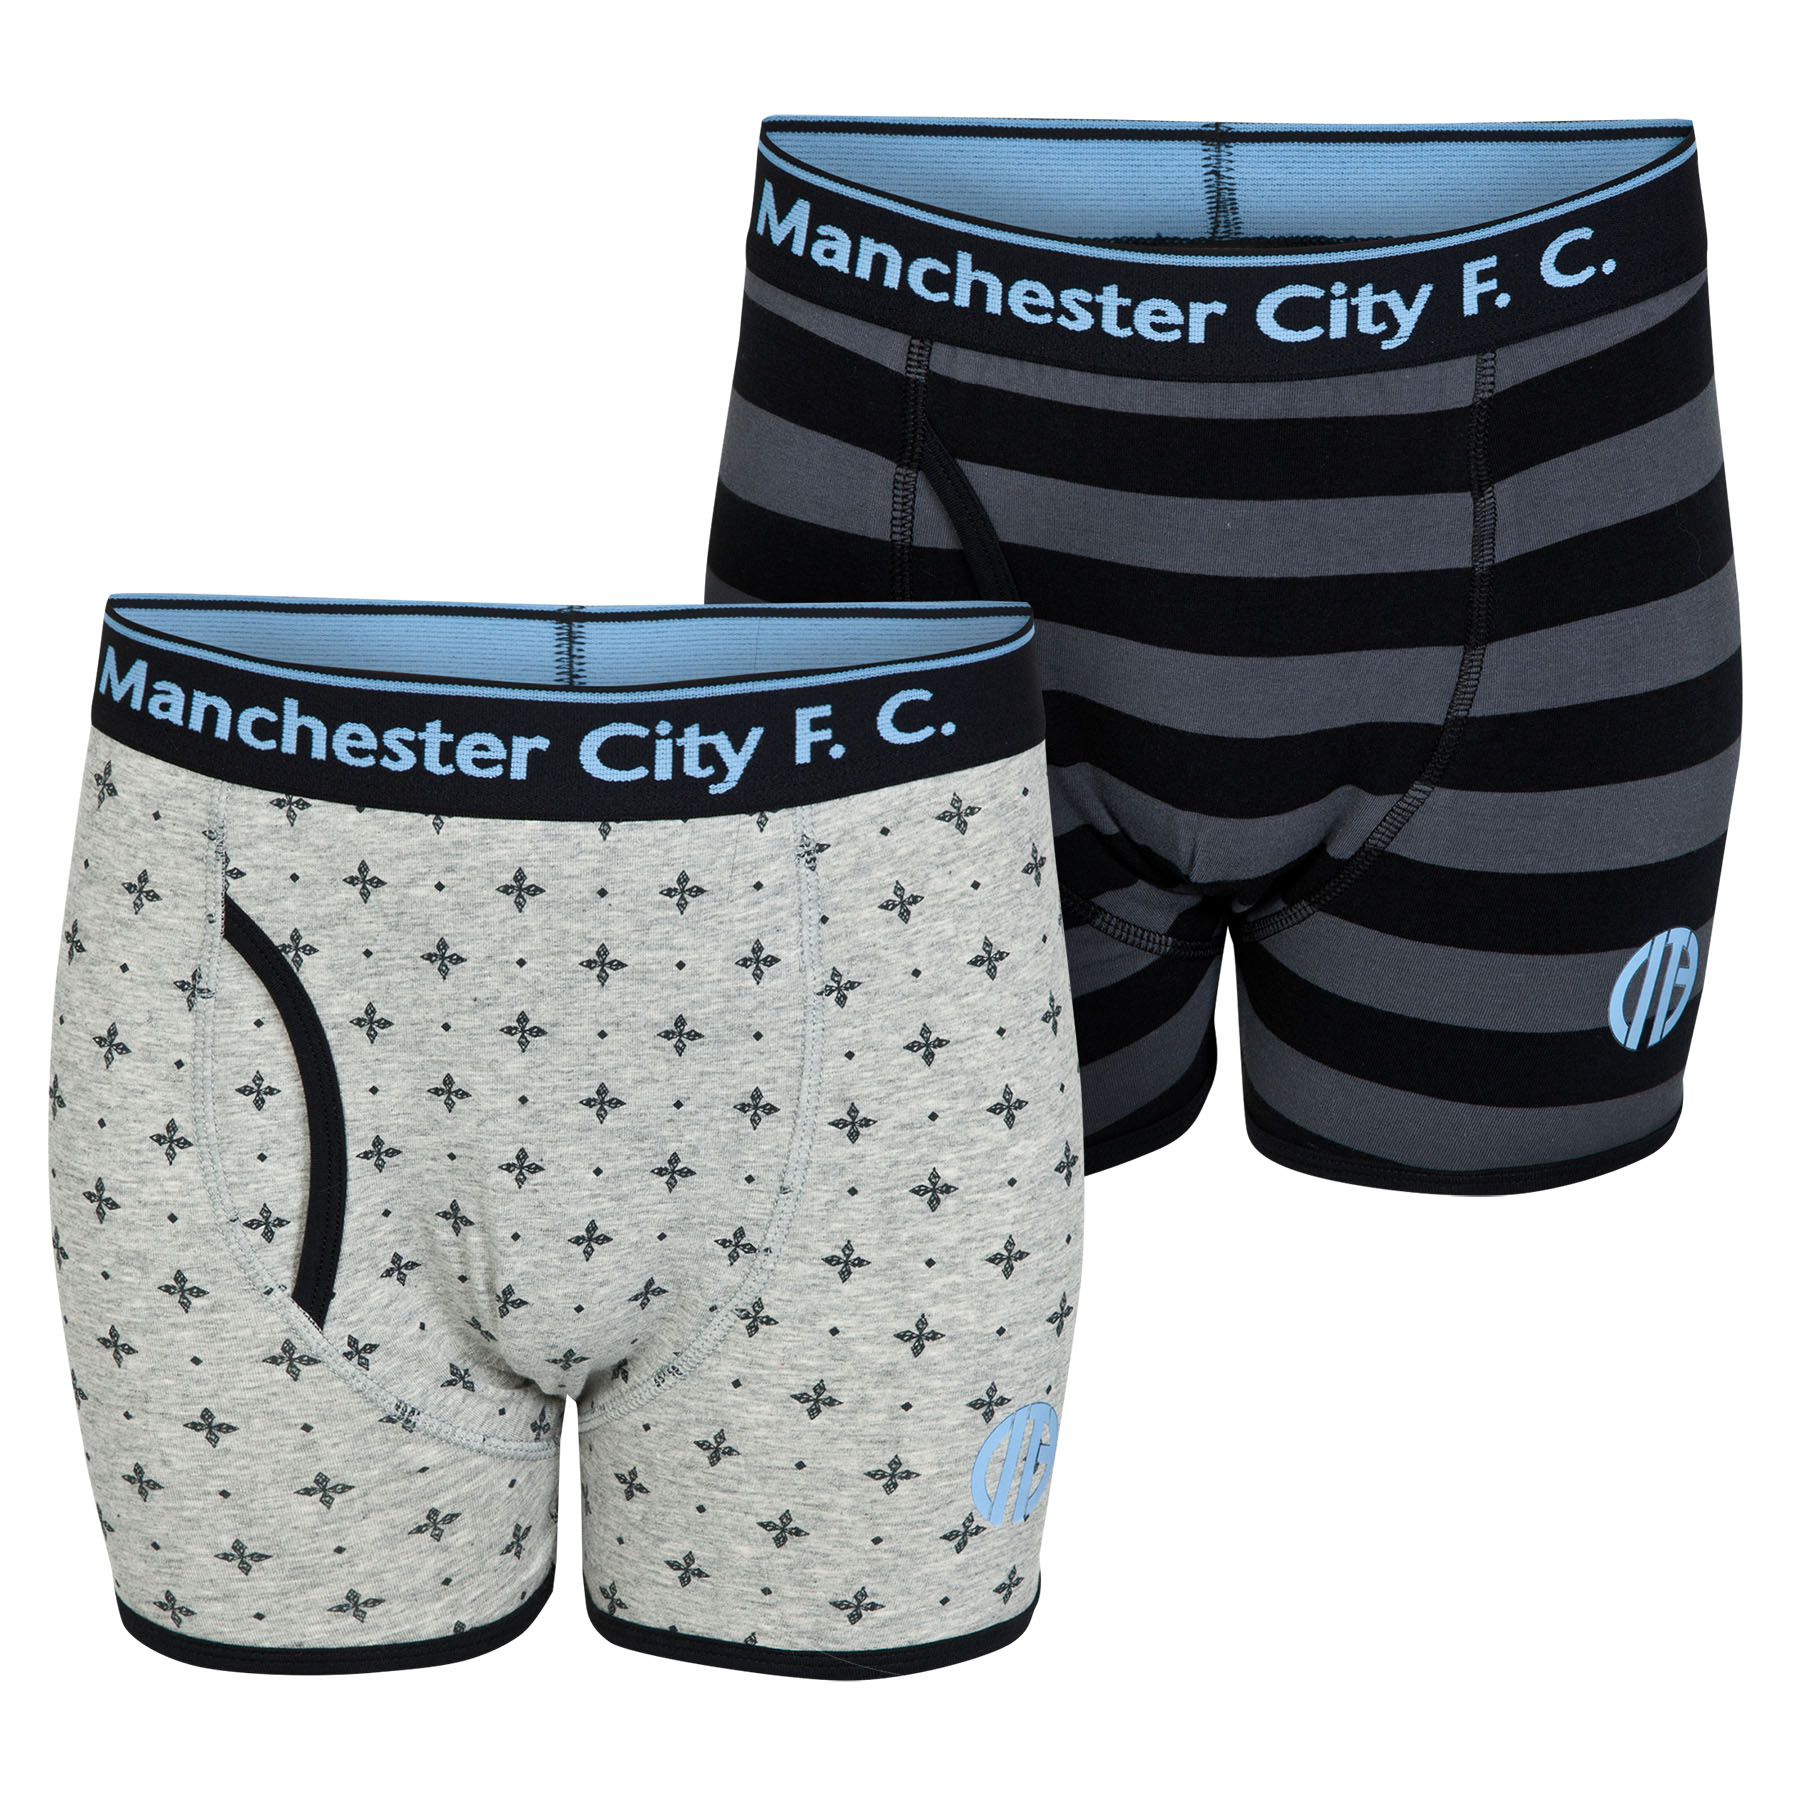 Manchester City 2PK Boxer Shorts - Black/Grey - Mens